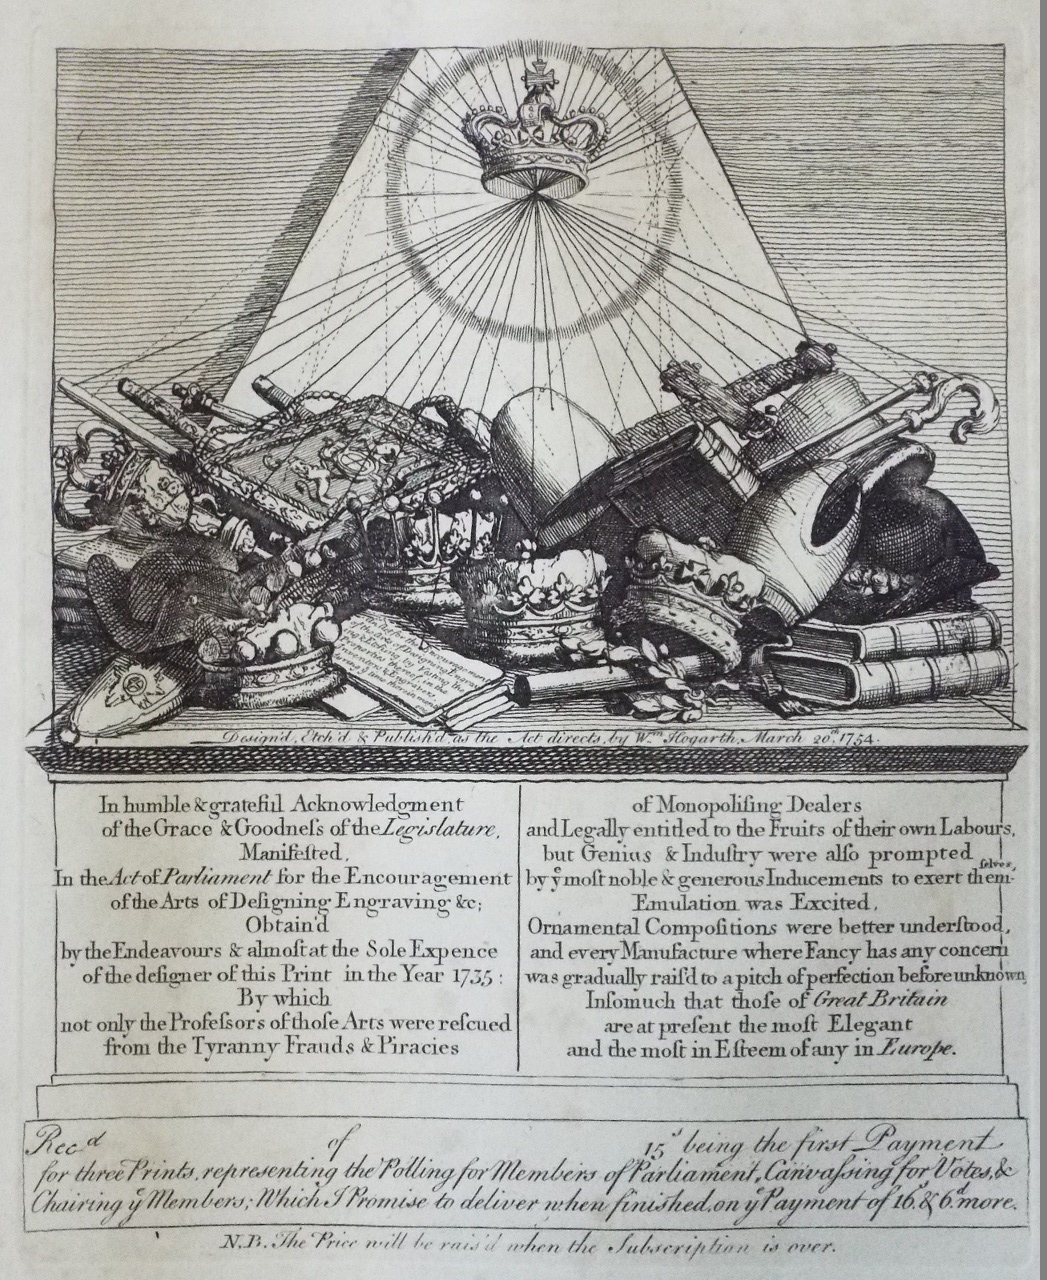 Print - Receipt for Polling prints - Hogarth